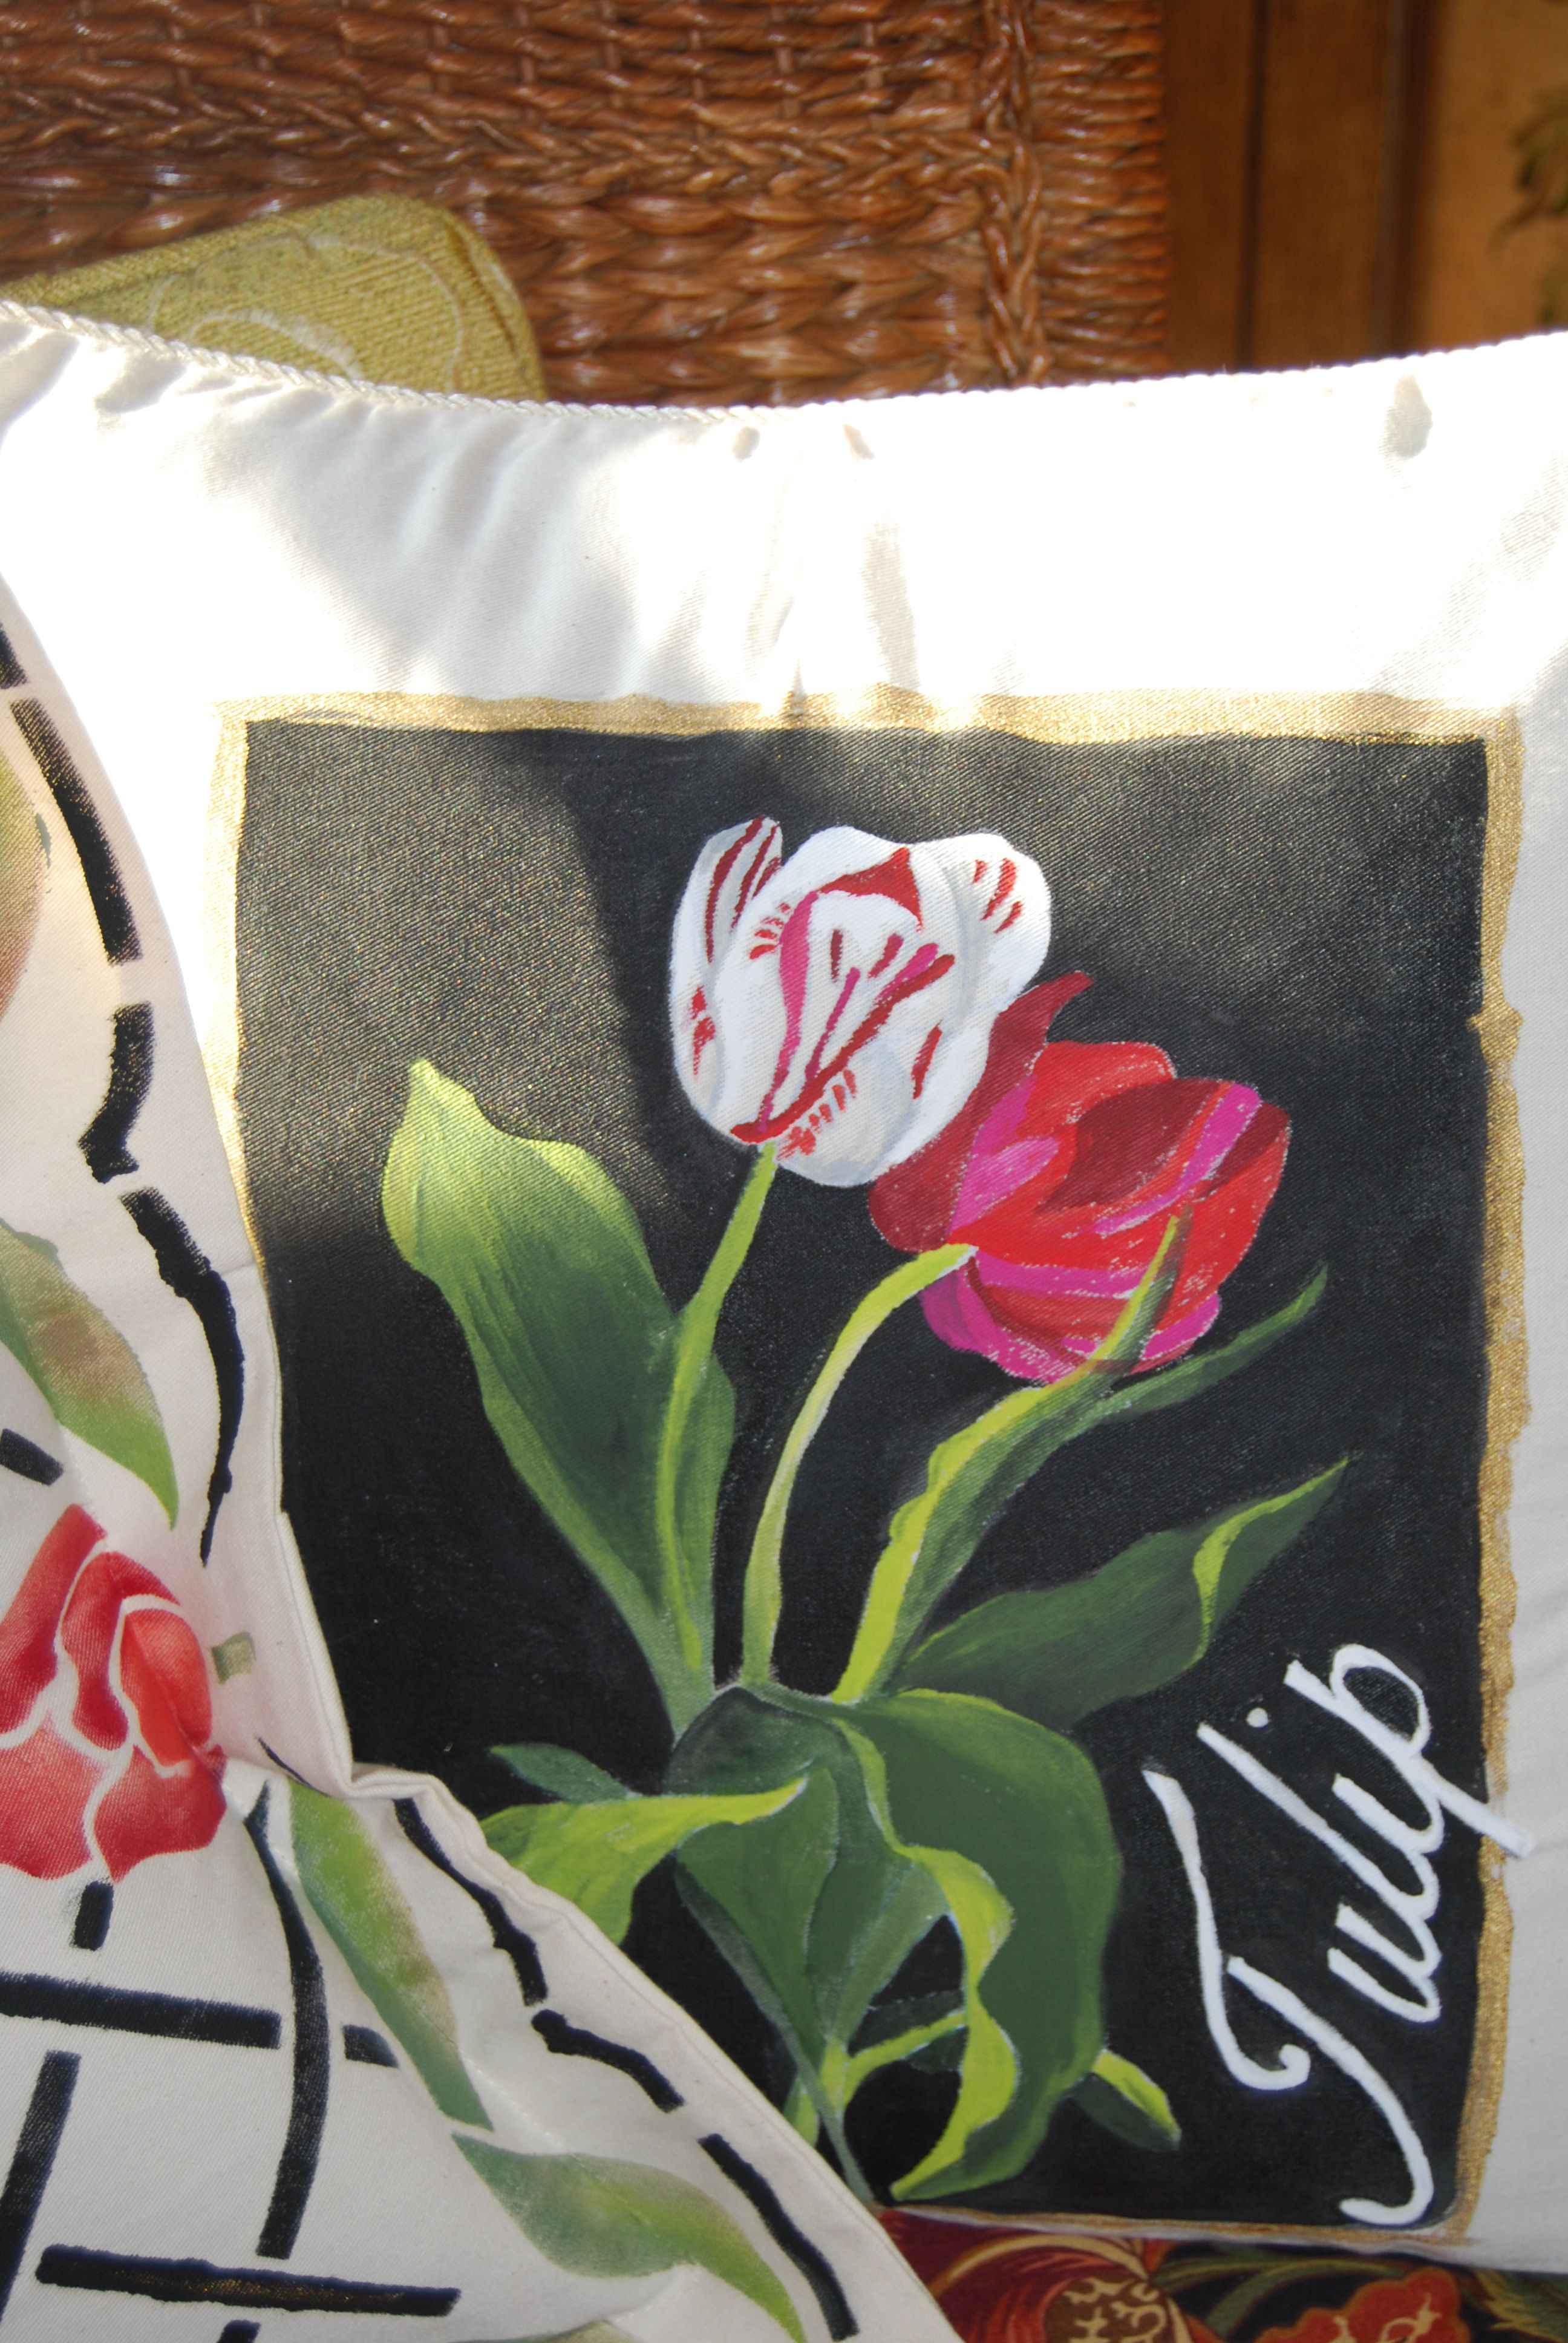 easy diy throw pillow covers step by step tutorial.htm painted pillows hand painted pillows  fabric painting  pillows  hand painted pillows  fabric painting